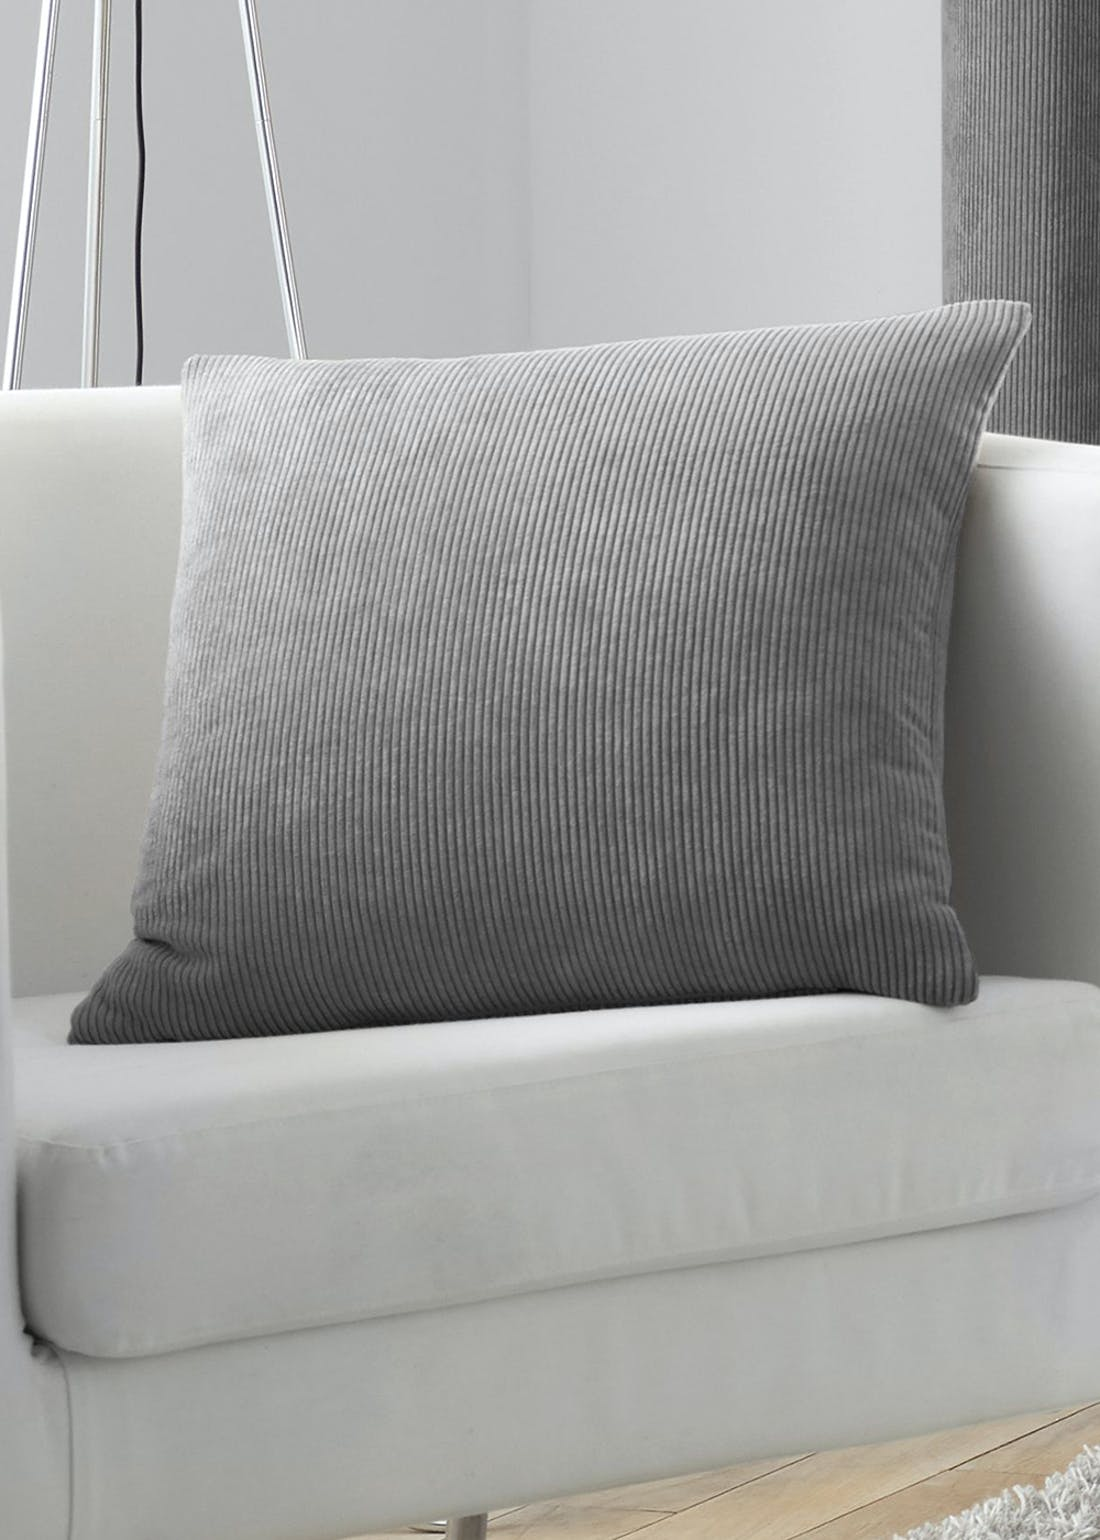 Curtina Kilbride Cushion (43cm x 43cm)